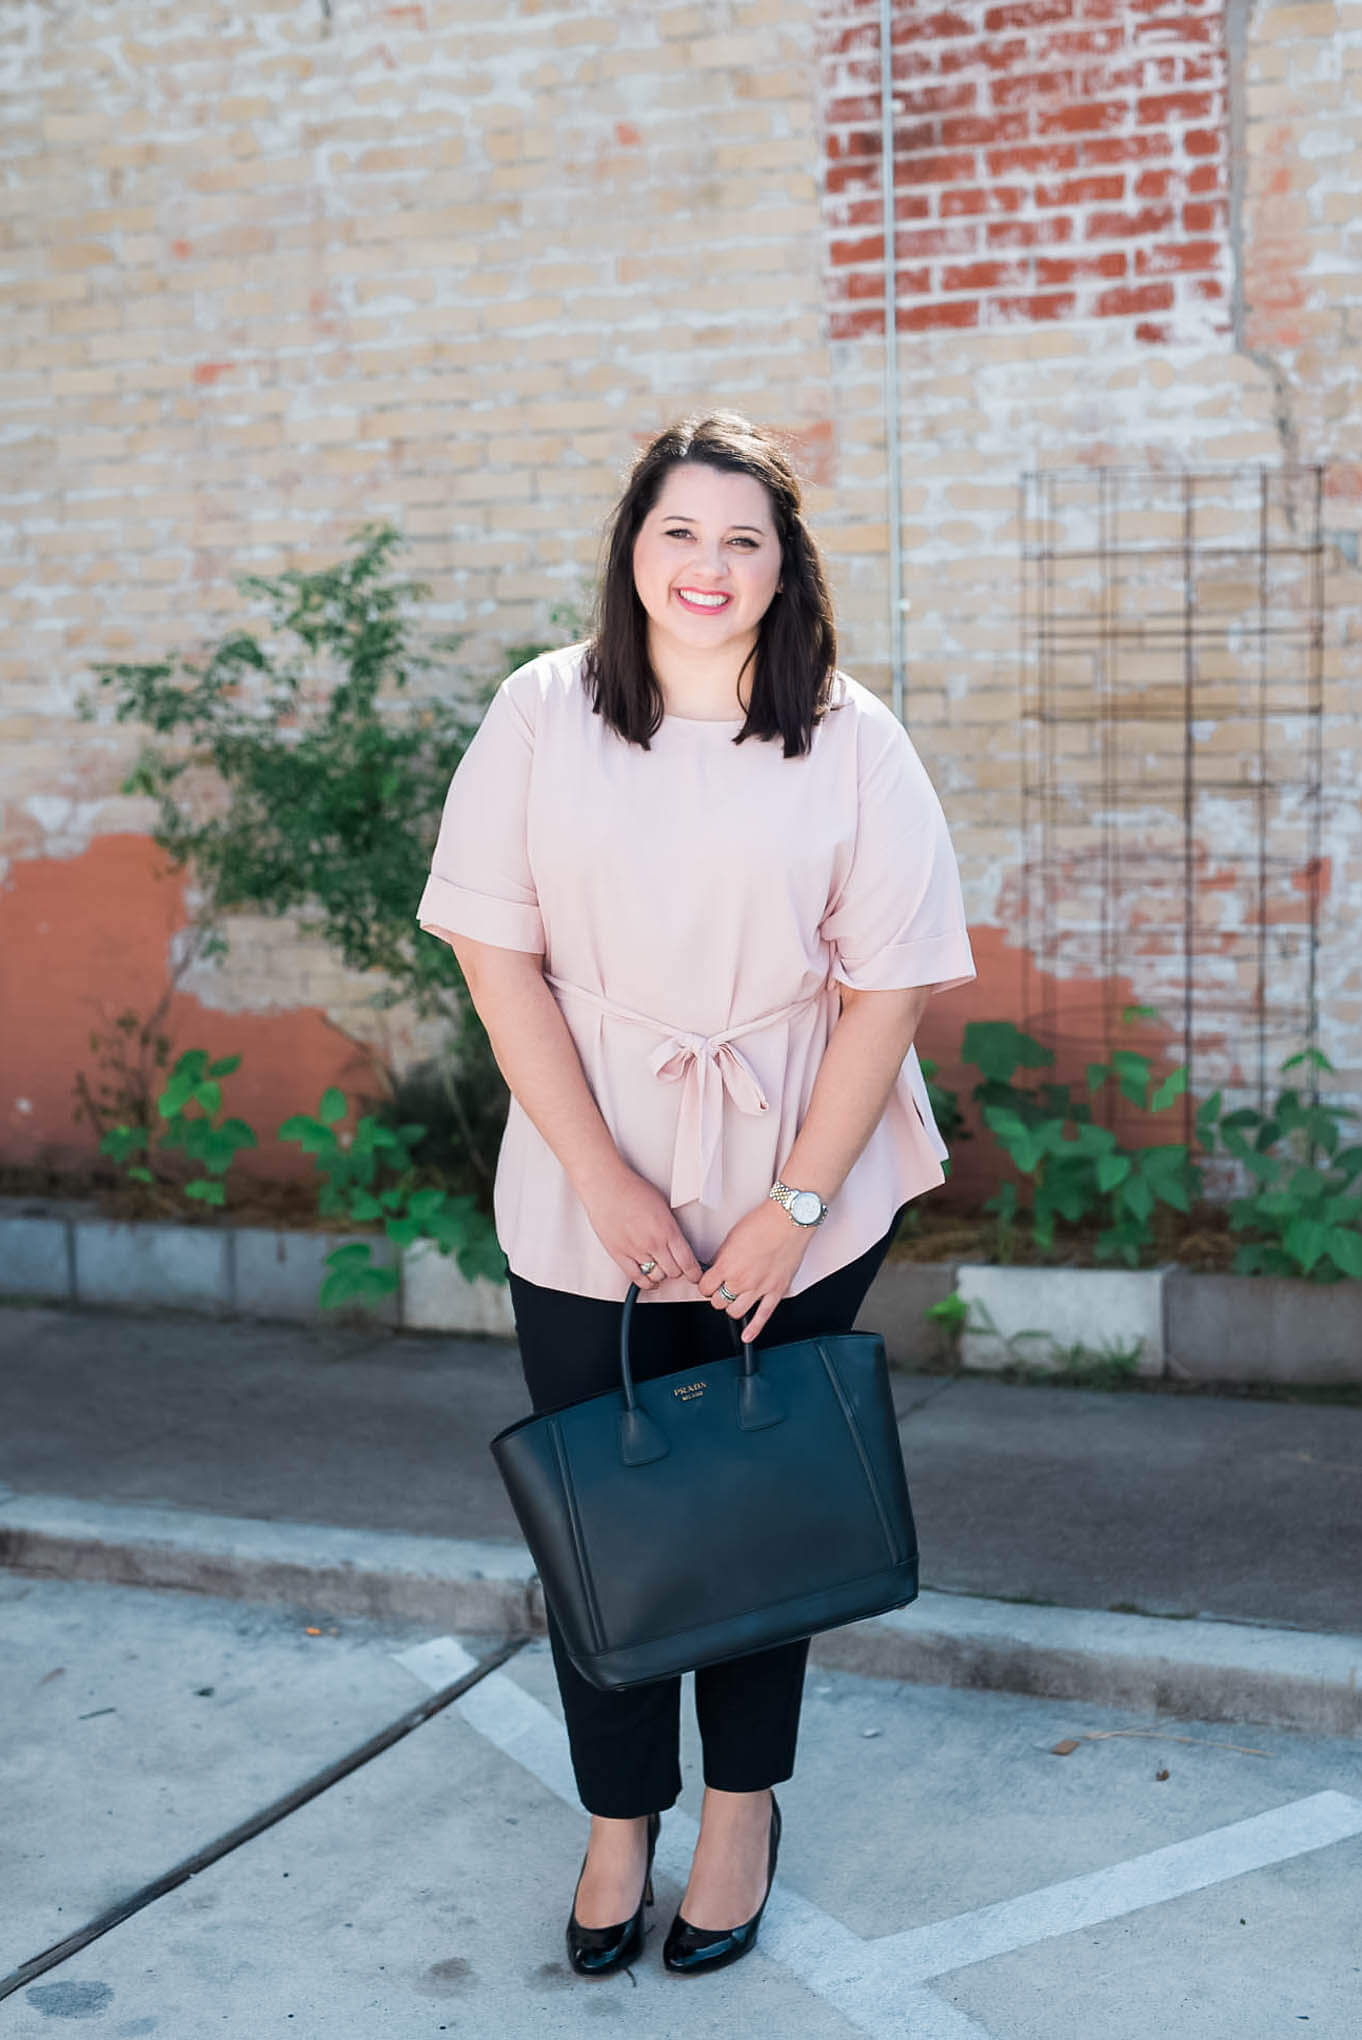 Work, Work, Work - The perfect business casual work attire to be a #girlboss | Something Gold, Something Blue a curvy fashion blog - About Emily, the woman behind popular Houston Curvy Fashion Blog, Something Gold, Something Blue